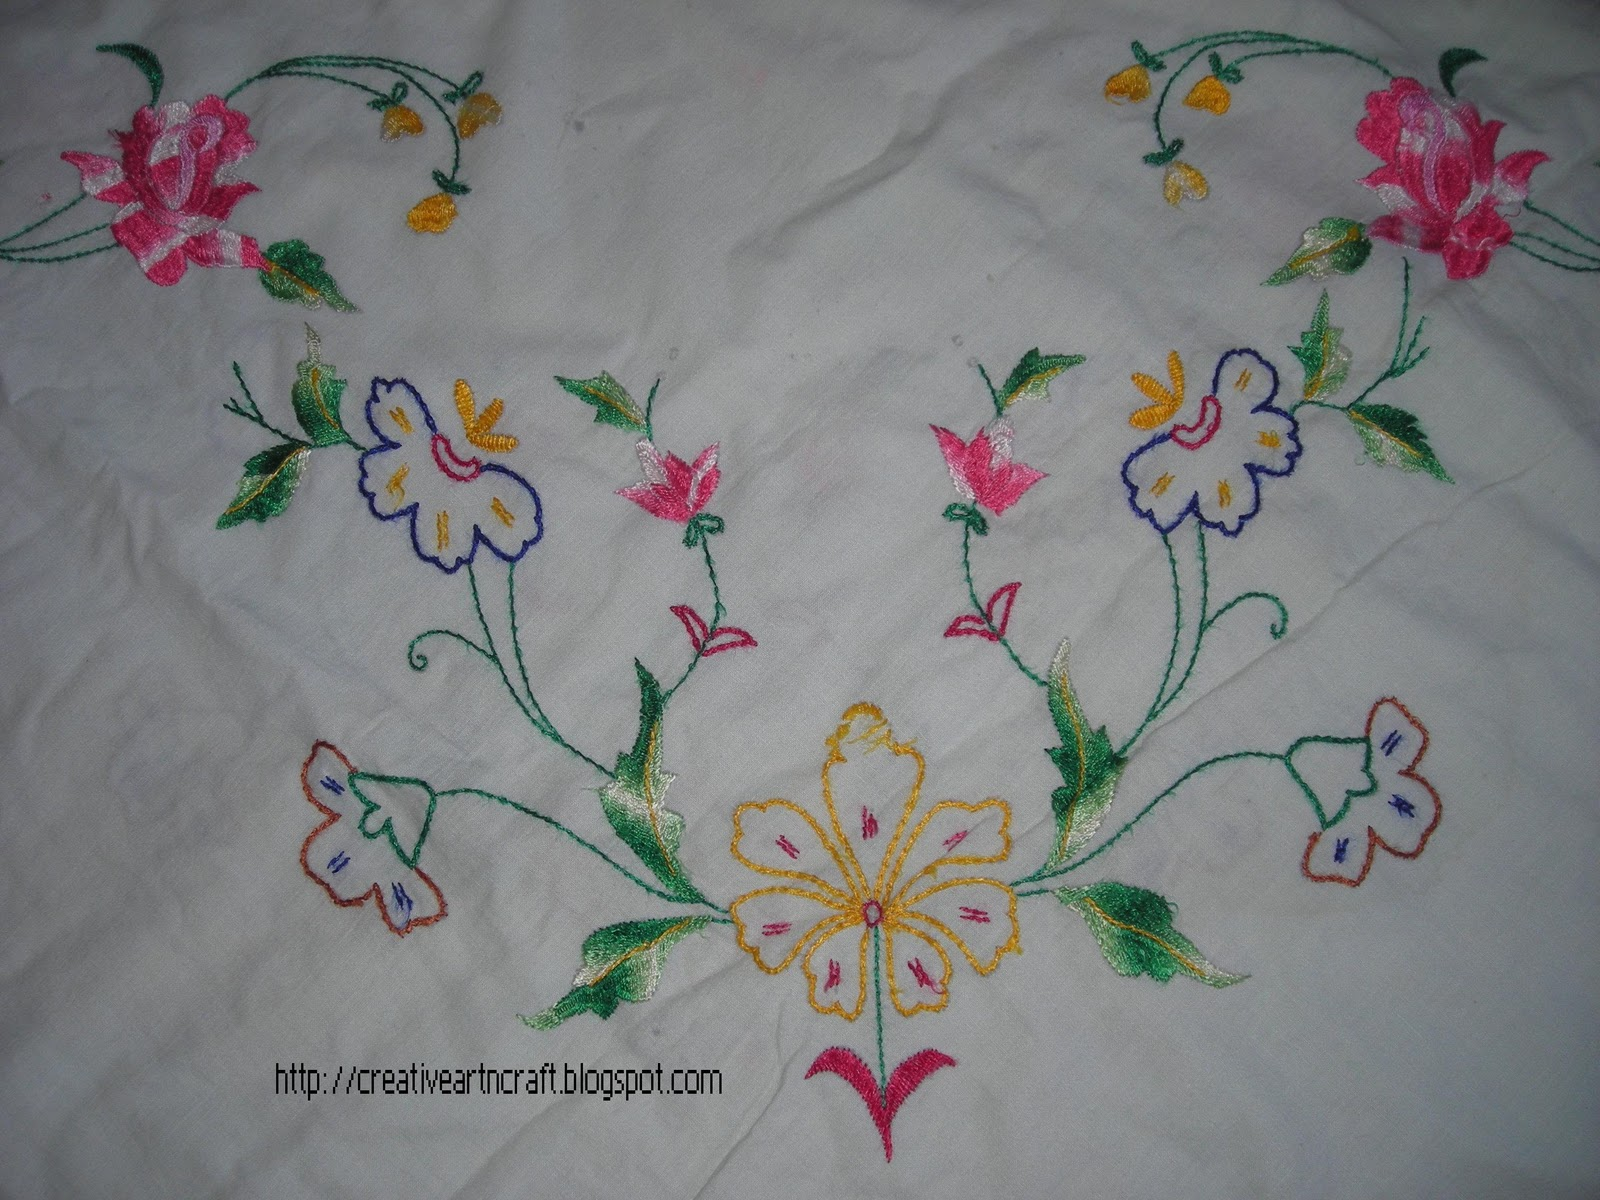 Anu S Art And Crafts Hand Embroidery On Bed Sheet